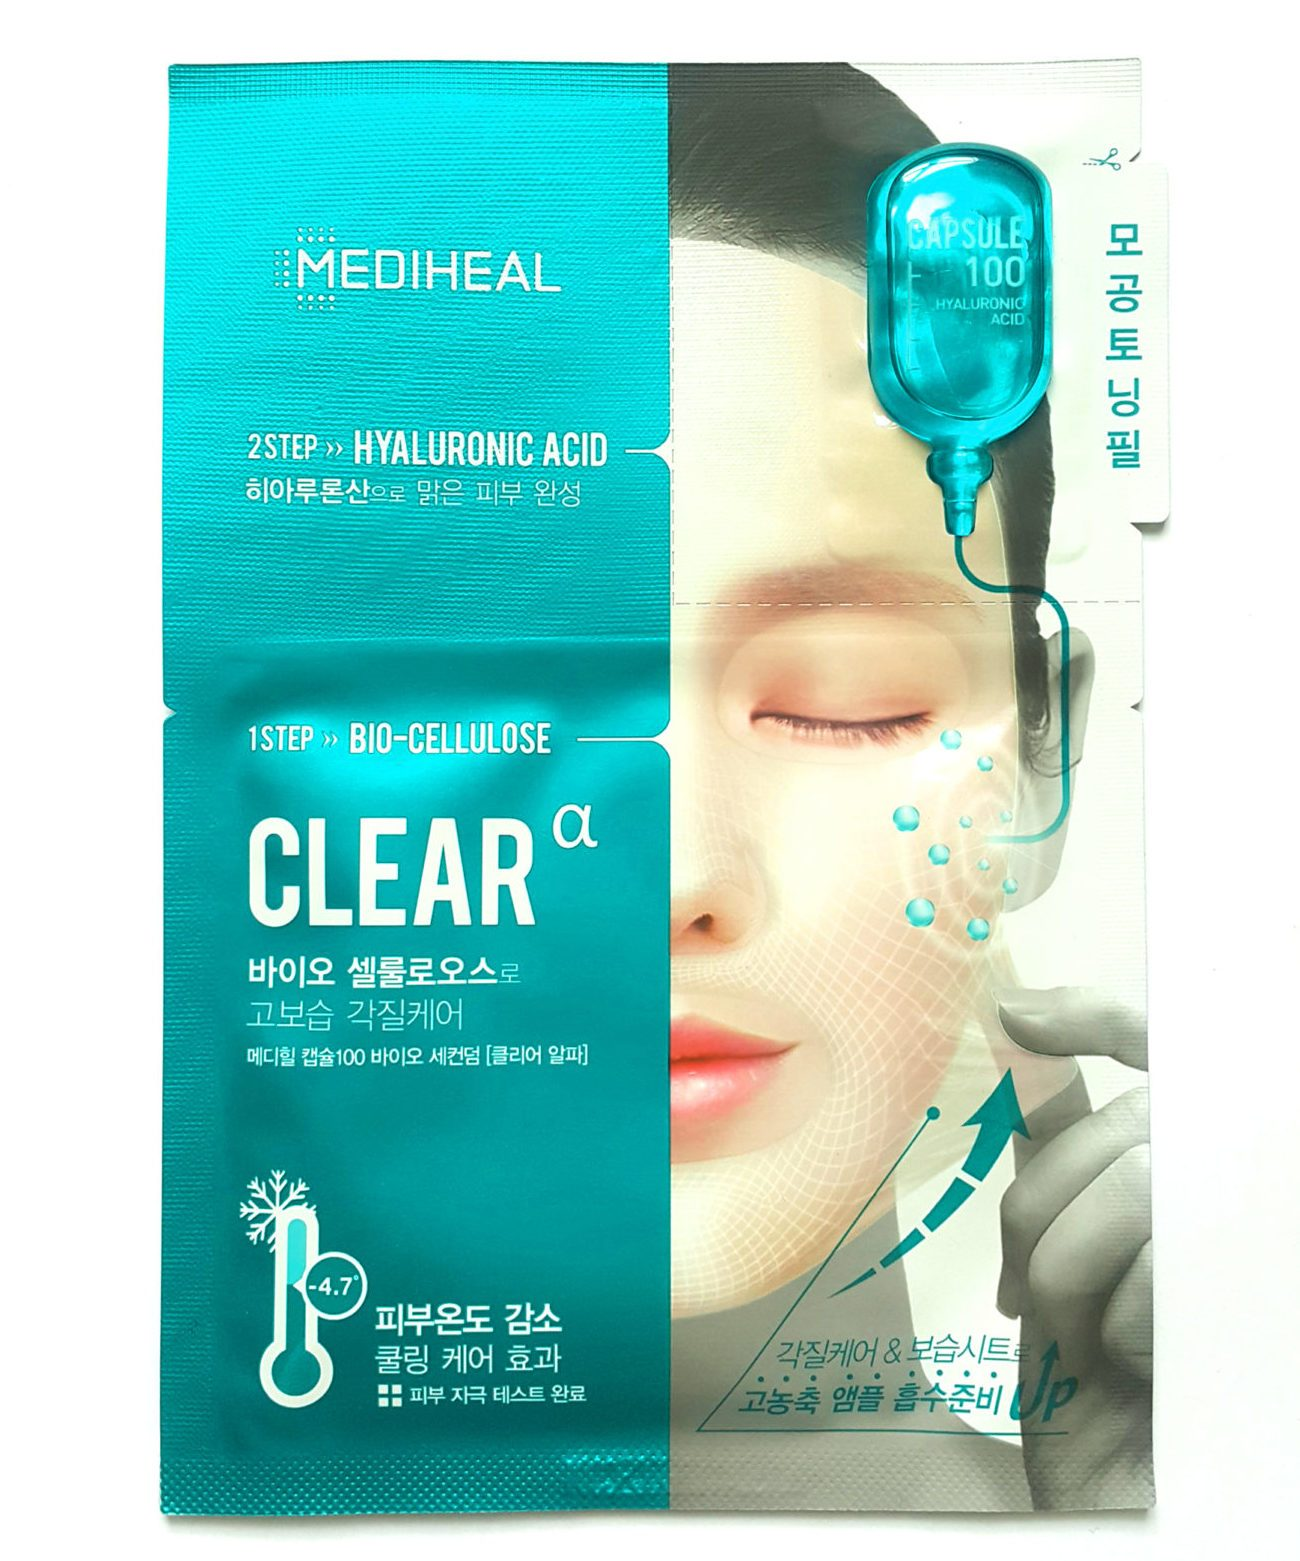 Mediheal Capsule100 Bio SeconDerm Clear α